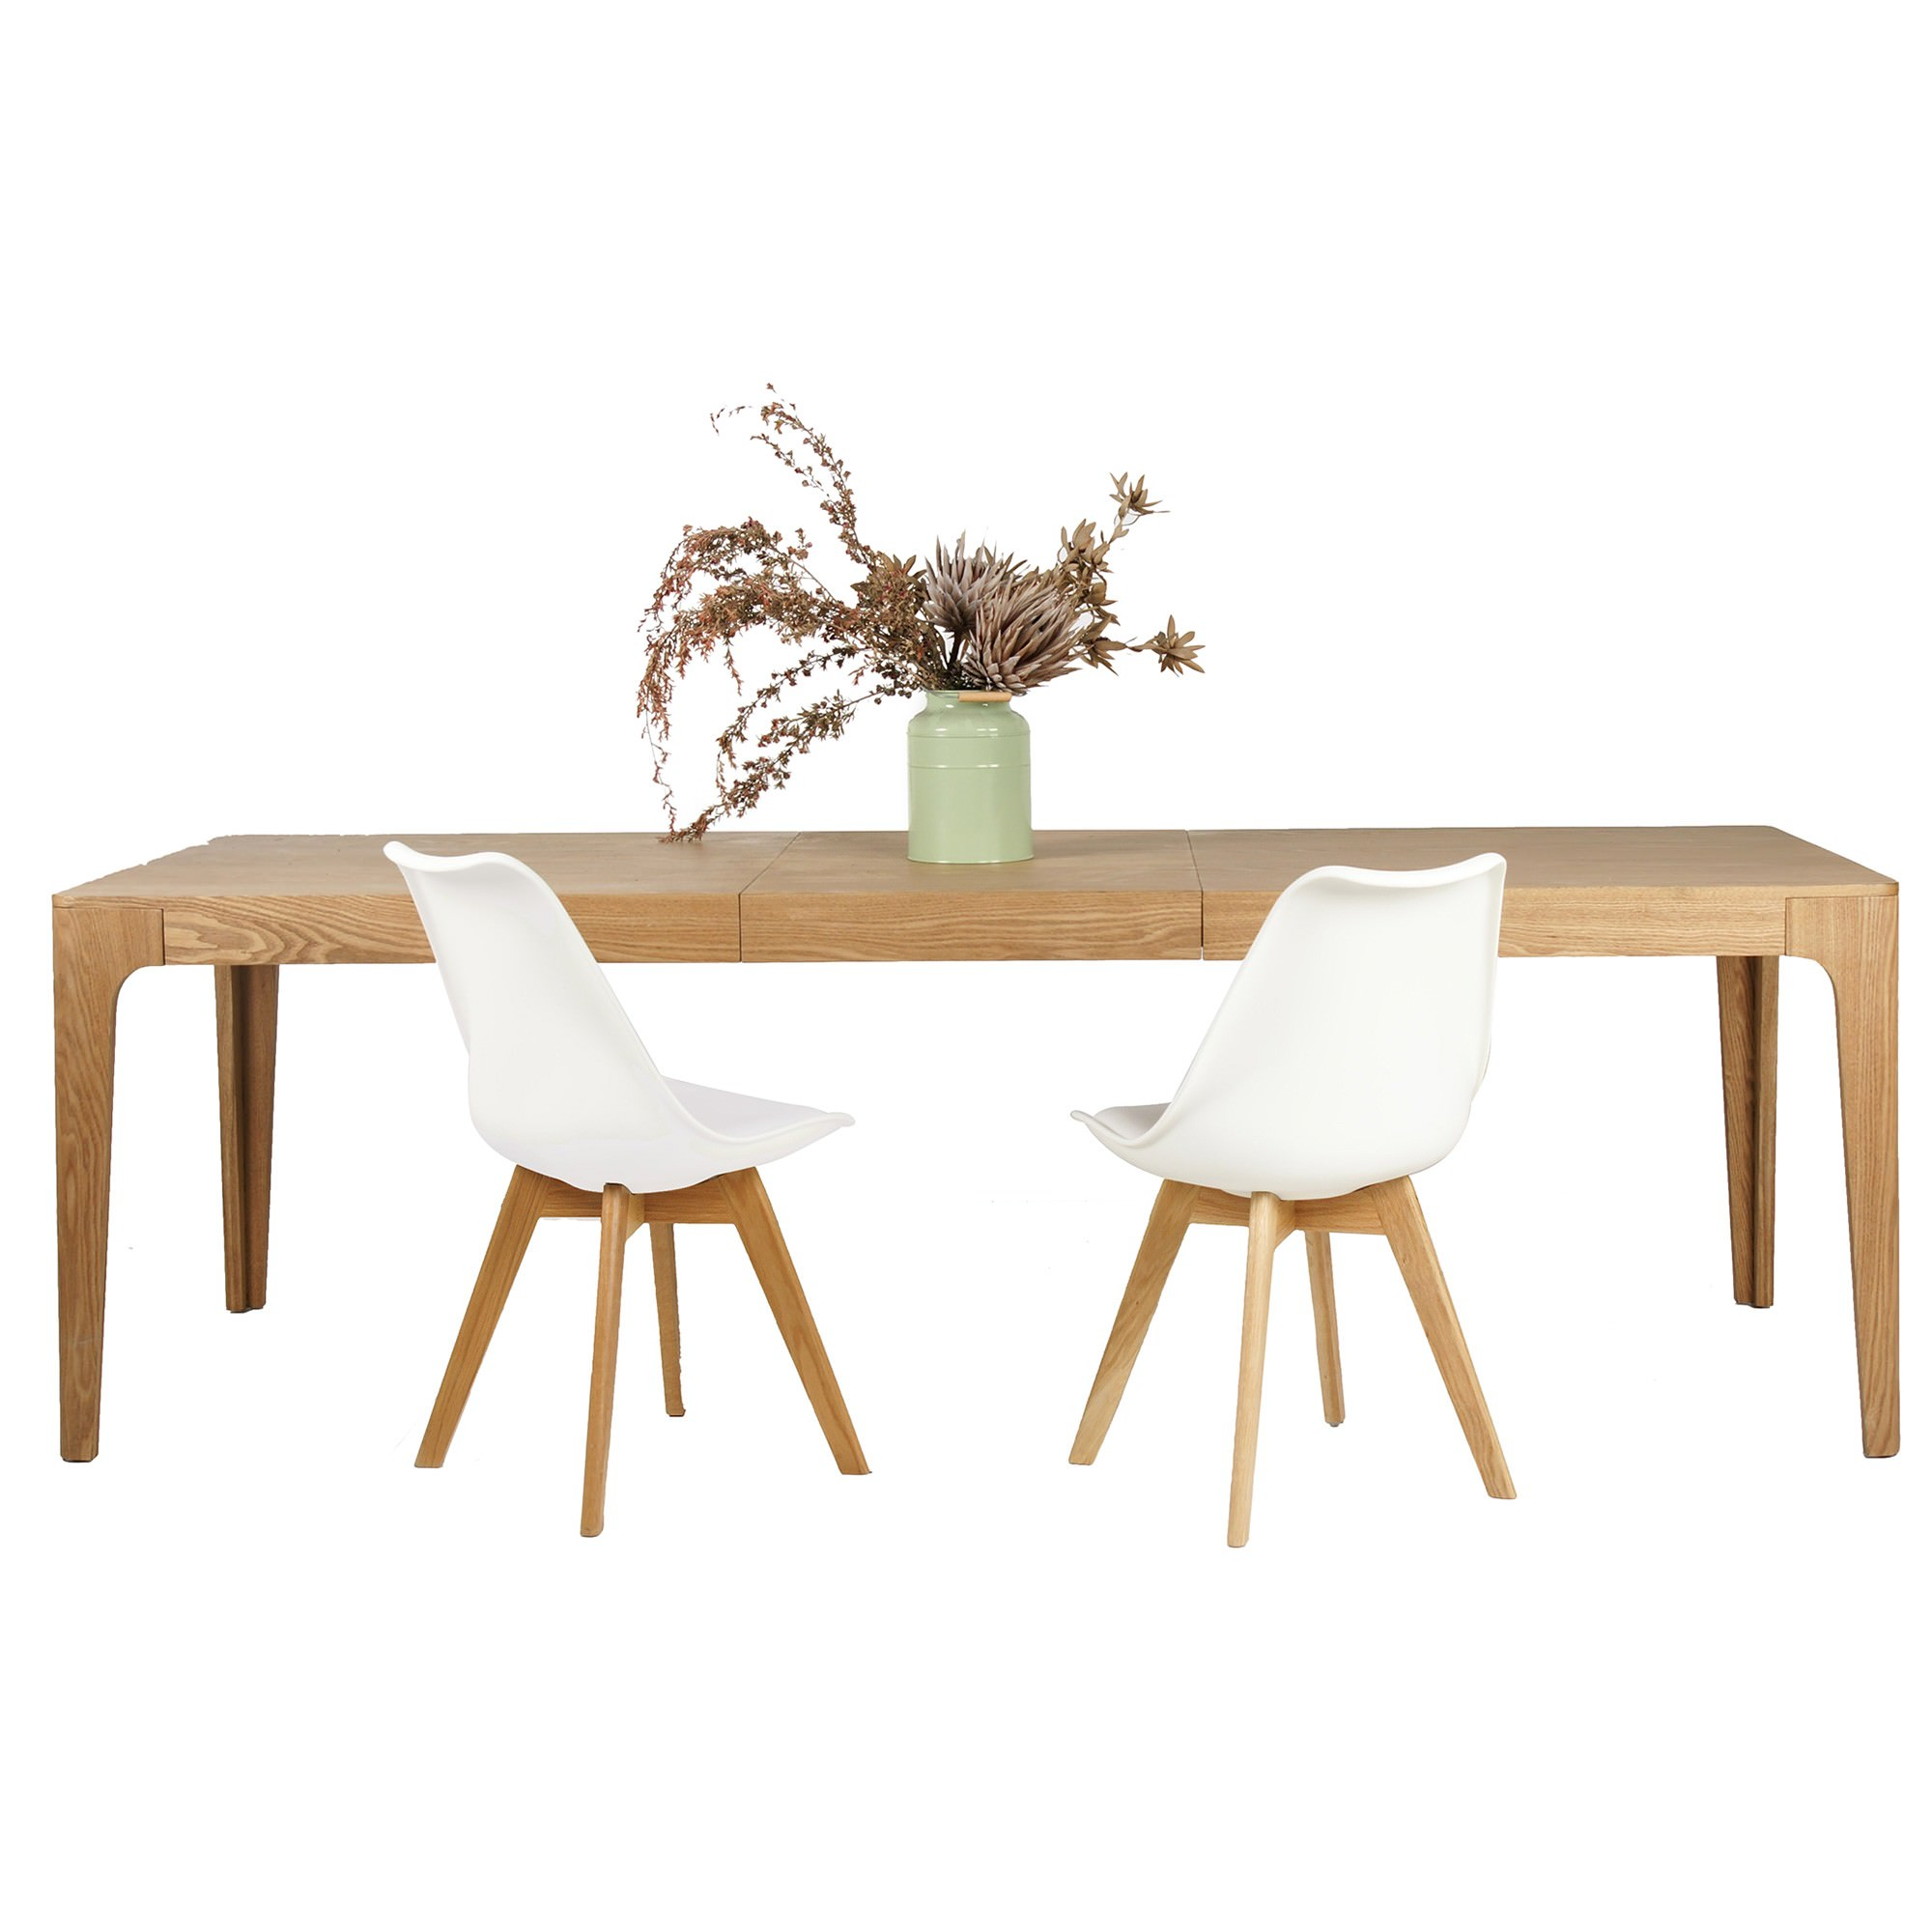 Dario 9 Piece Timber Extendable Dining Table Set, 180-240cm, with White Morrison Chair